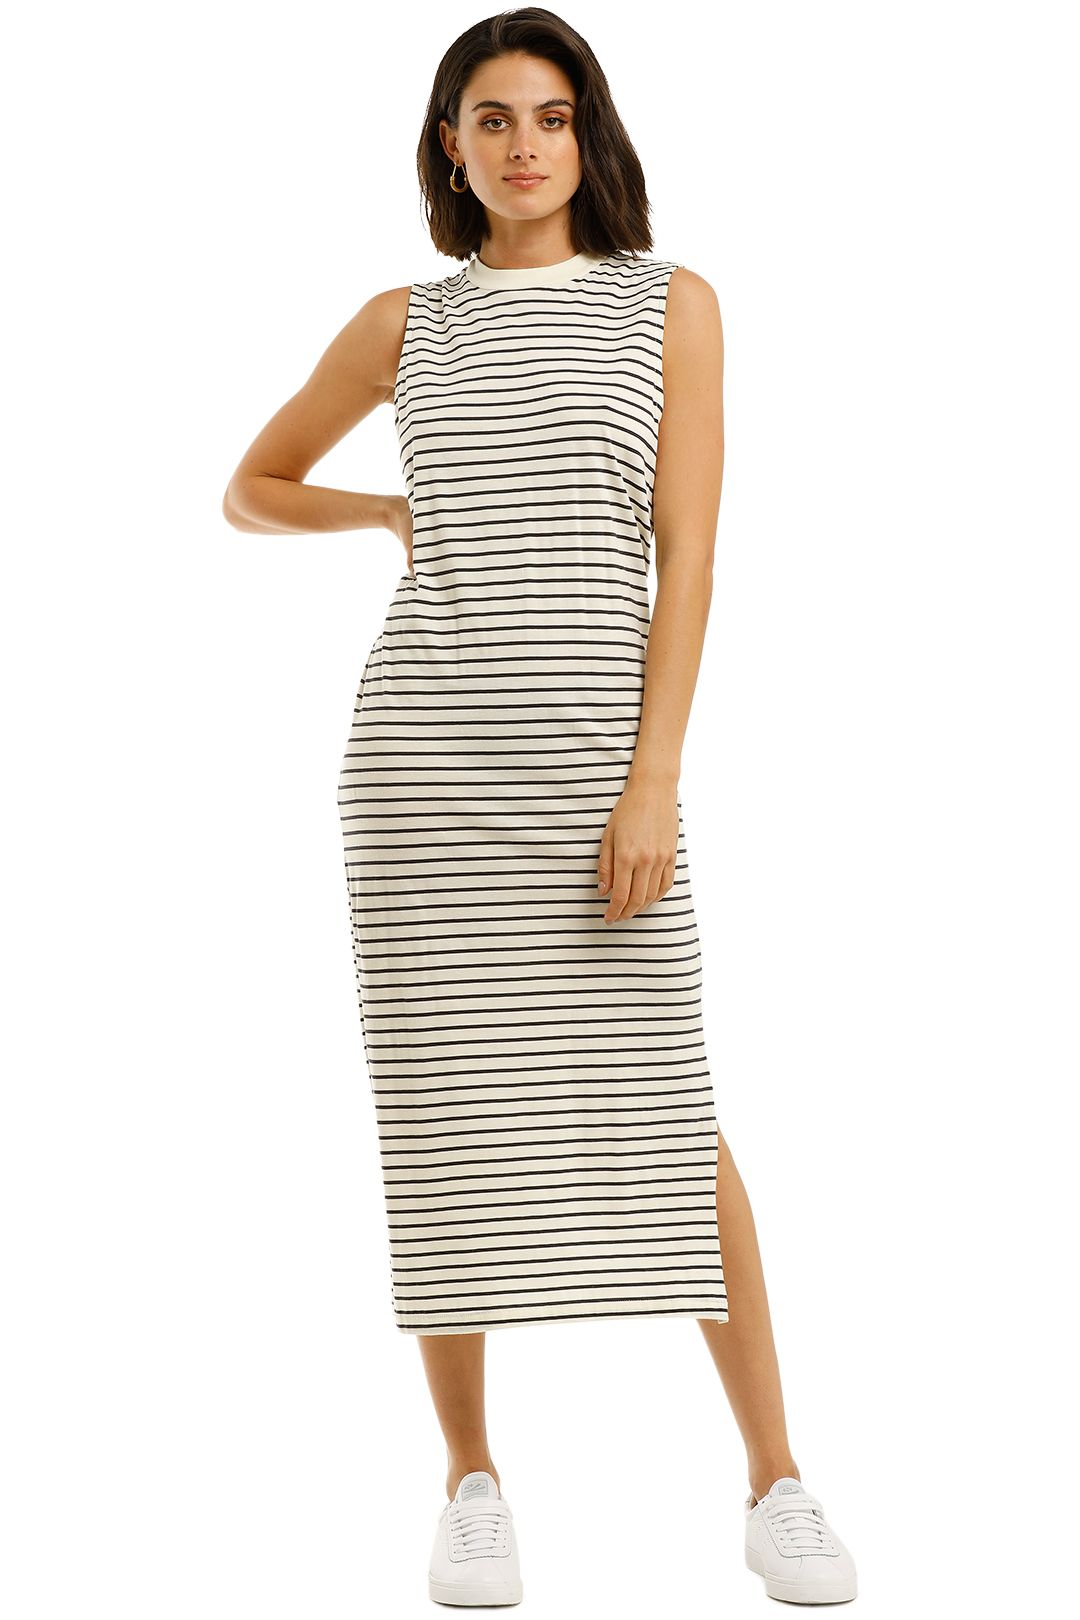 C&M-Camilla-And-Marc-Aella-Dress-Soft-Butter-Front